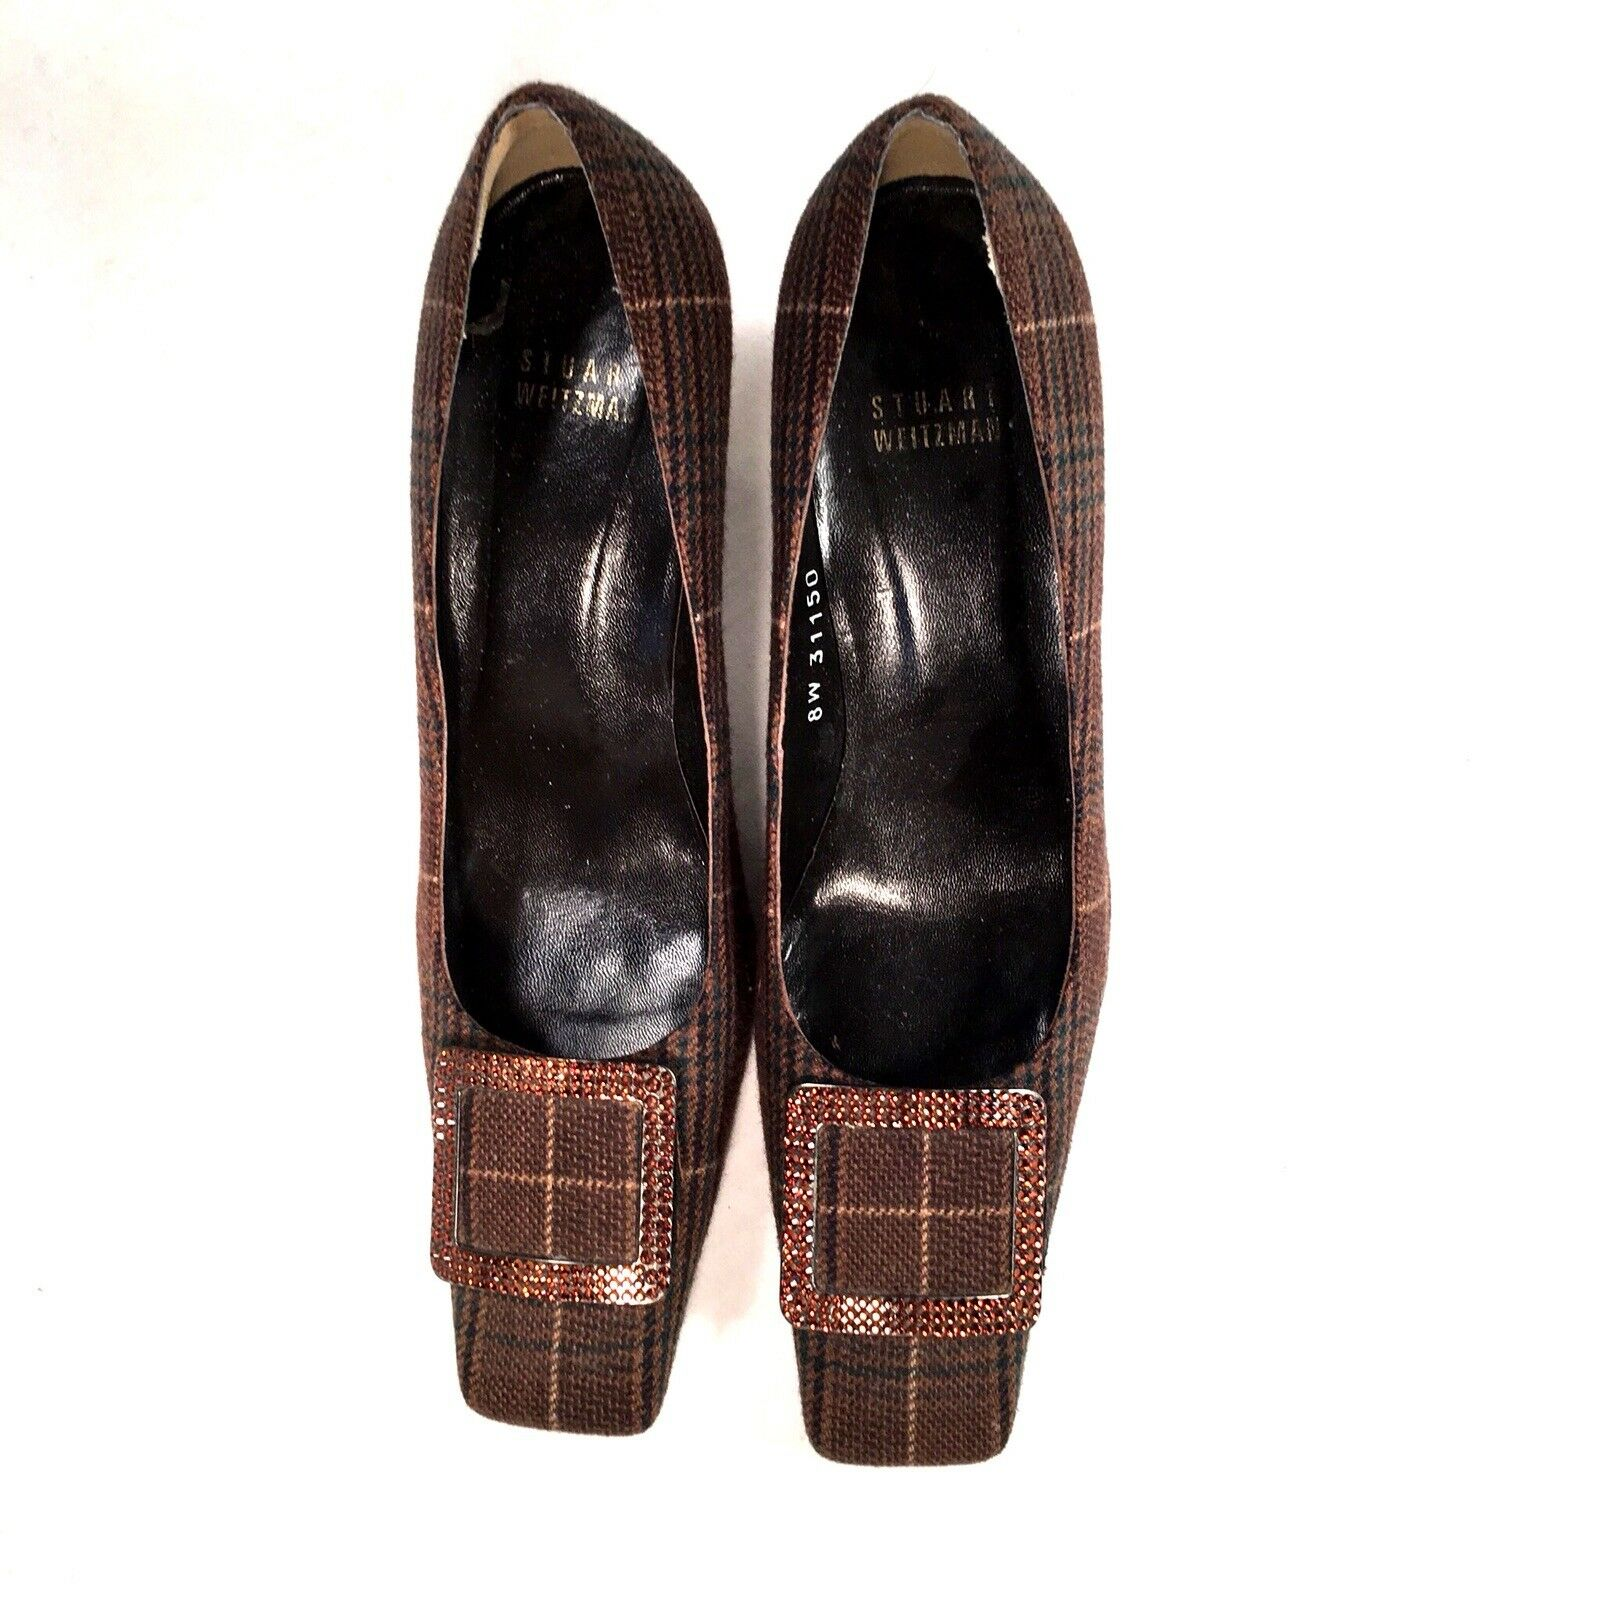 Stuart Weitzman Brown Plaid shoes with jewel buckle Size 7 1 2